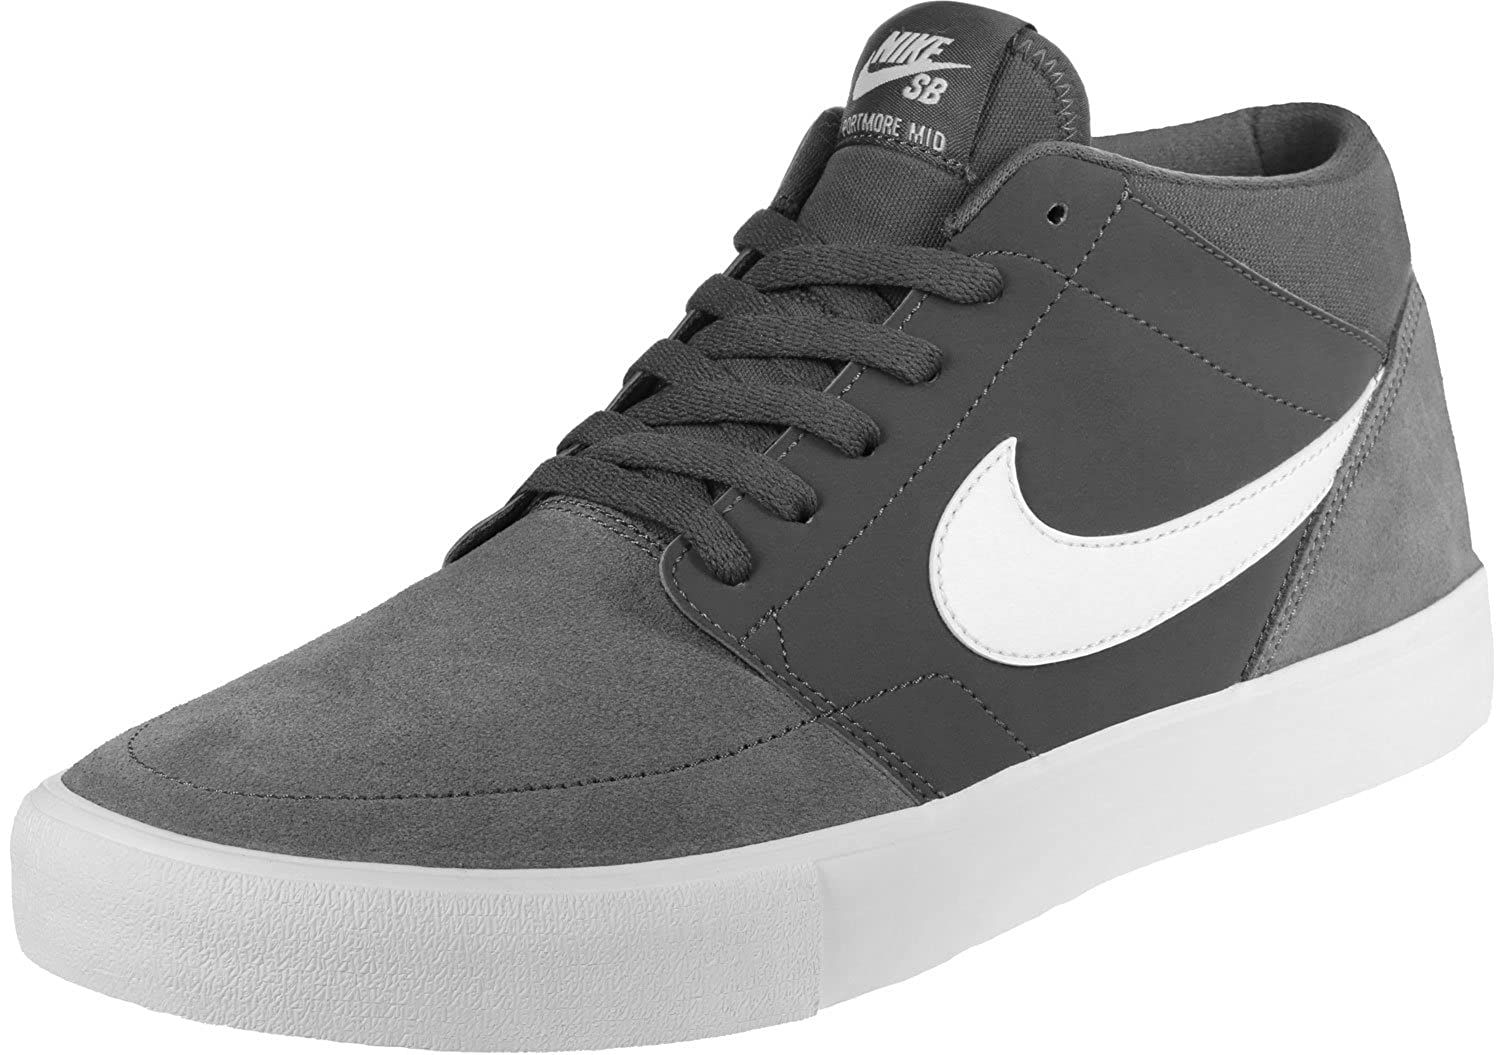 lowest price 151f2 37967 Nike SB Solarsoft Portmore II Mid Men s Skate Shoes (7.5 D(M) US, Dark Gray  White)  Buy Online at Low Prices in India - Amazon.in